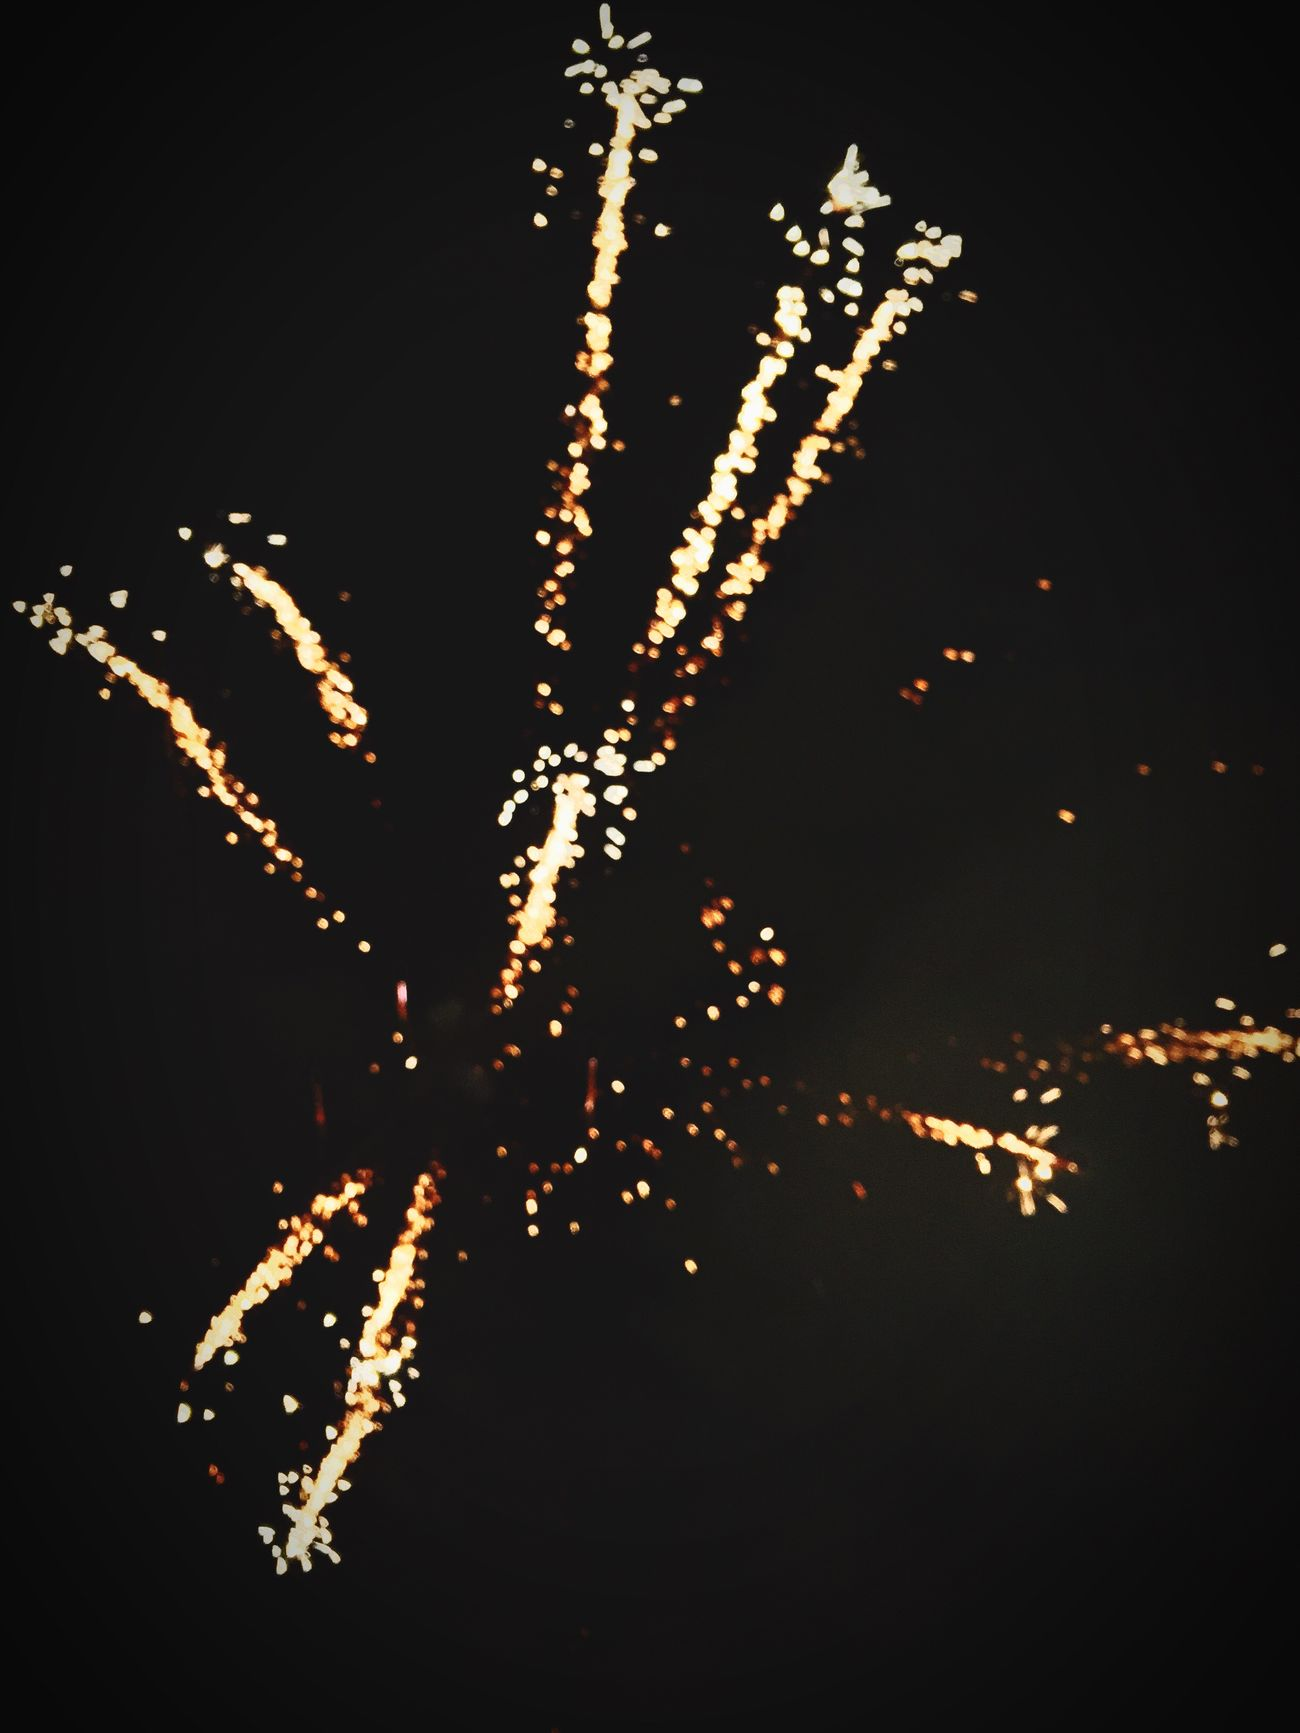 Fireworksphotography